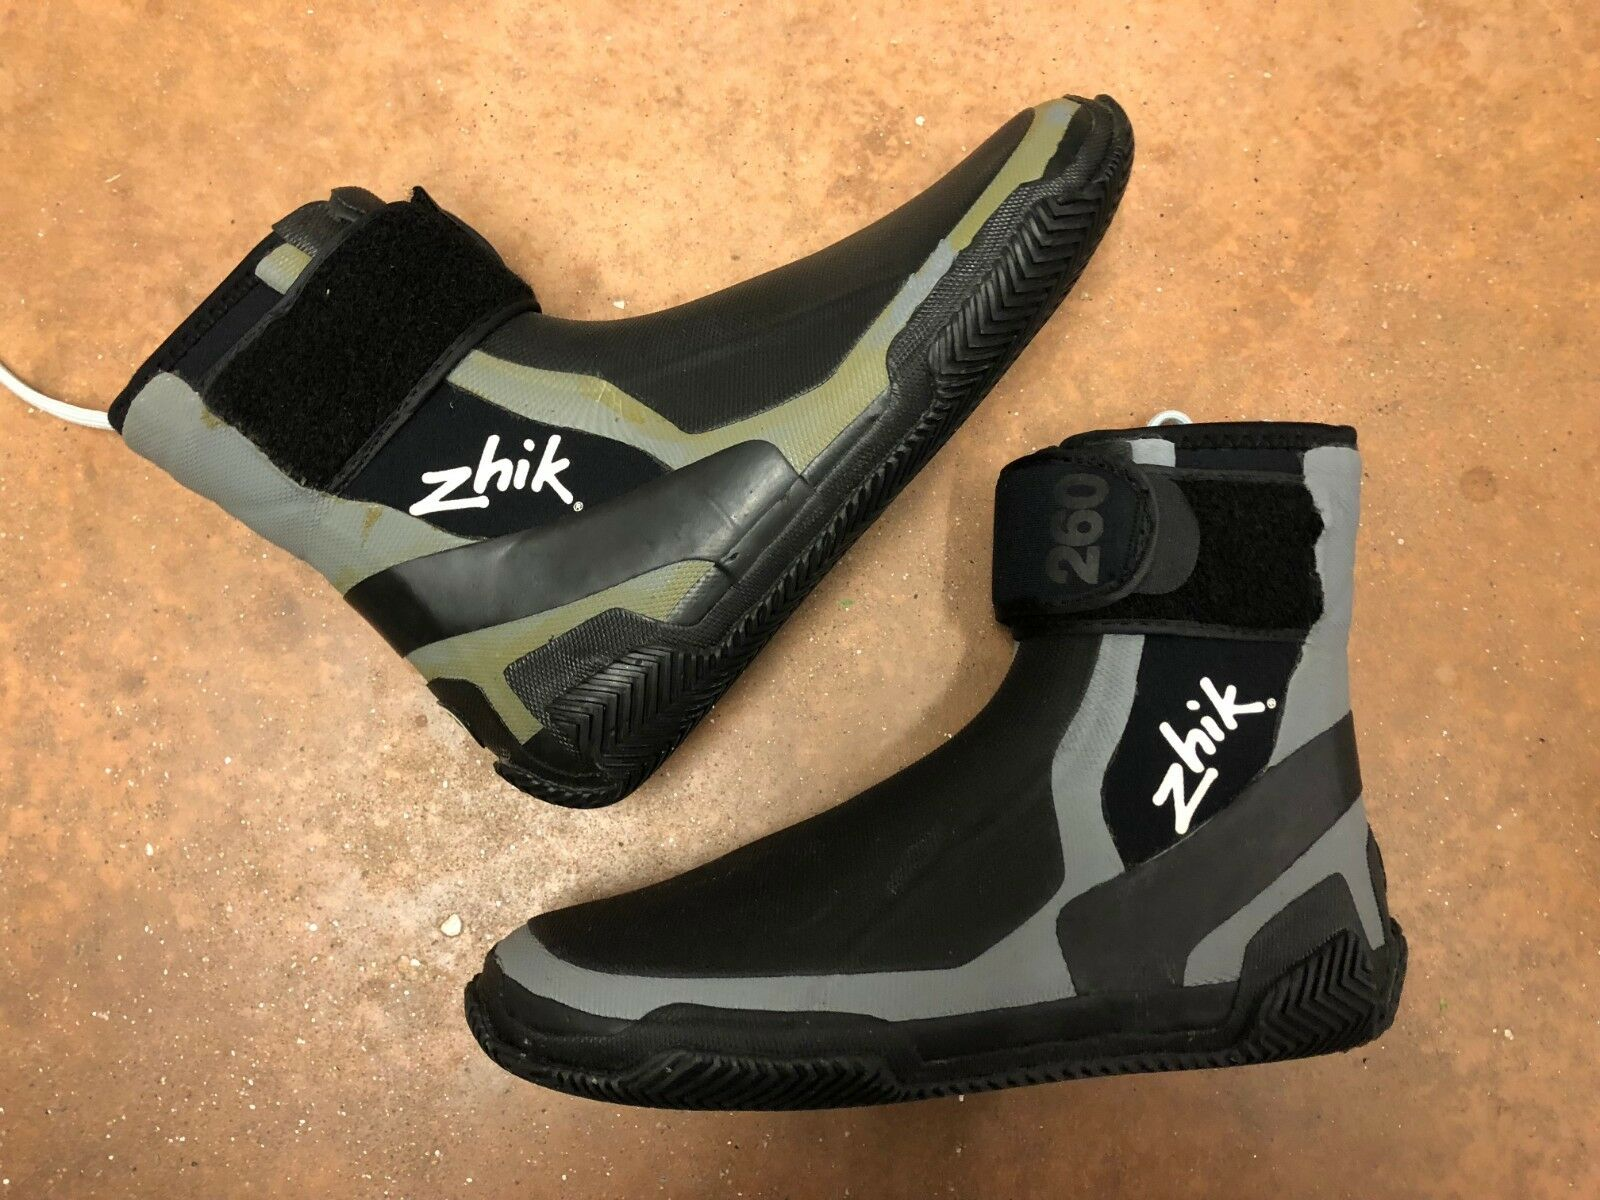 ZHIK HIGHCUT RACE BOOT Discolord, Size 8.5 US